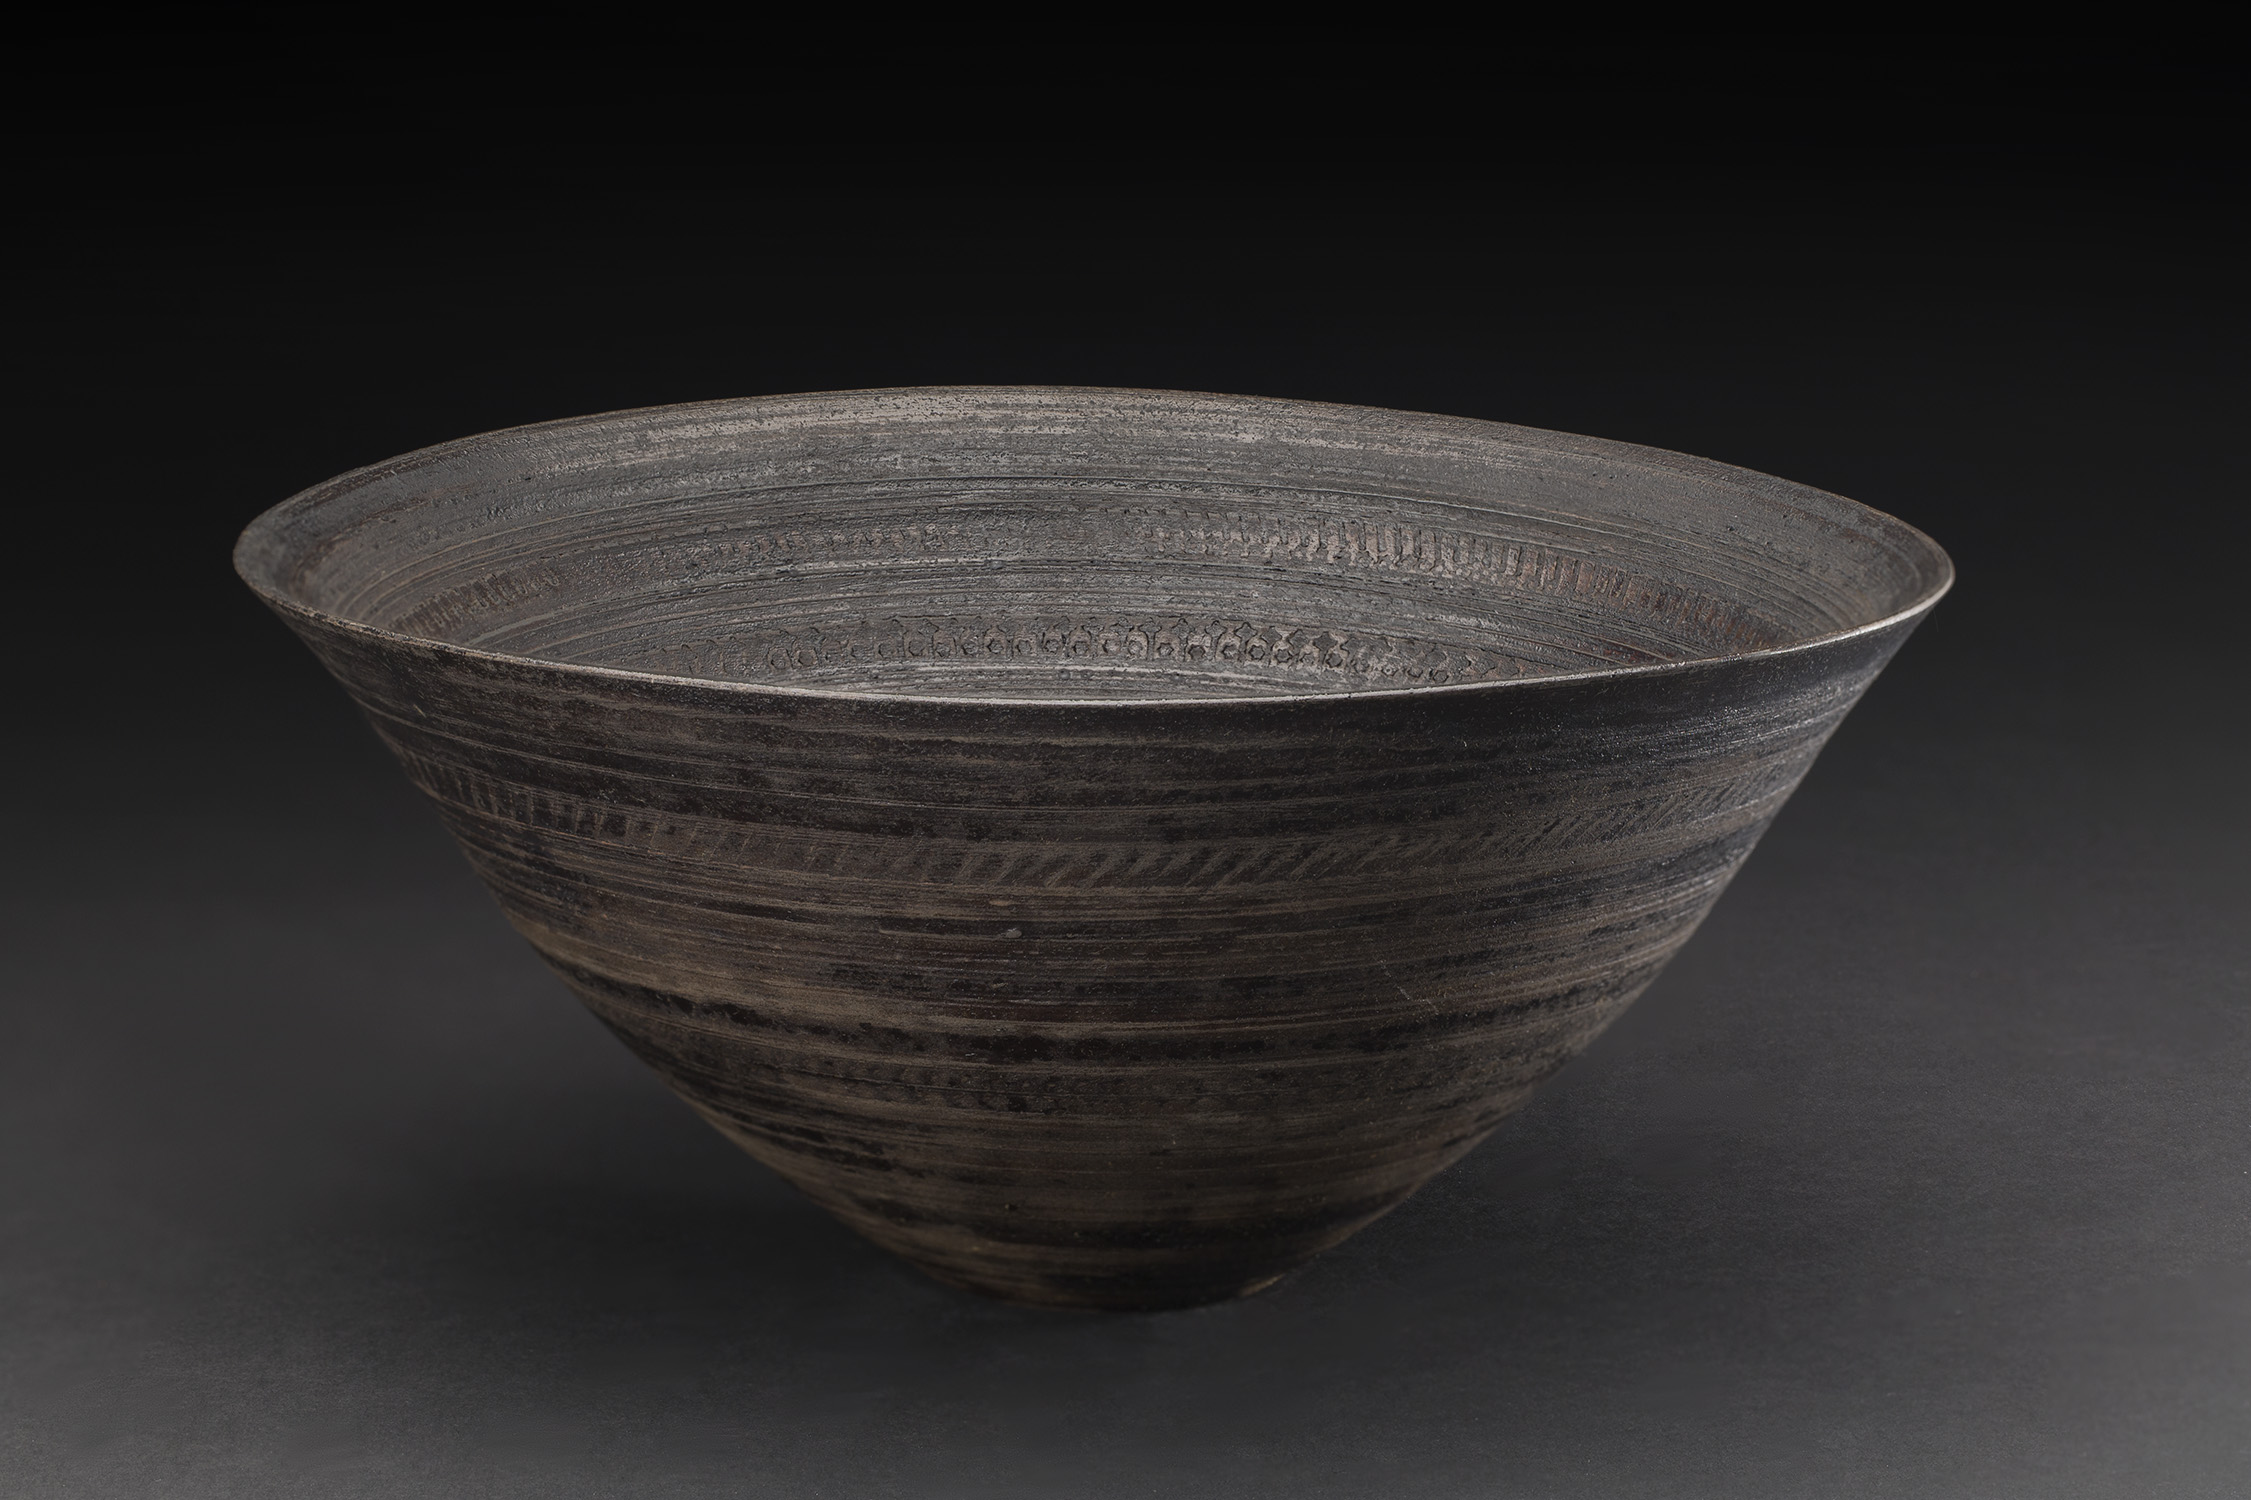 Akihiro Nikaido  Bowl  , 2019 Stamped Ceramic Coated with Lacquer 4.5 x 10 x 10.25 inches 11.4 x 25.4 x 26 cm ANk 62